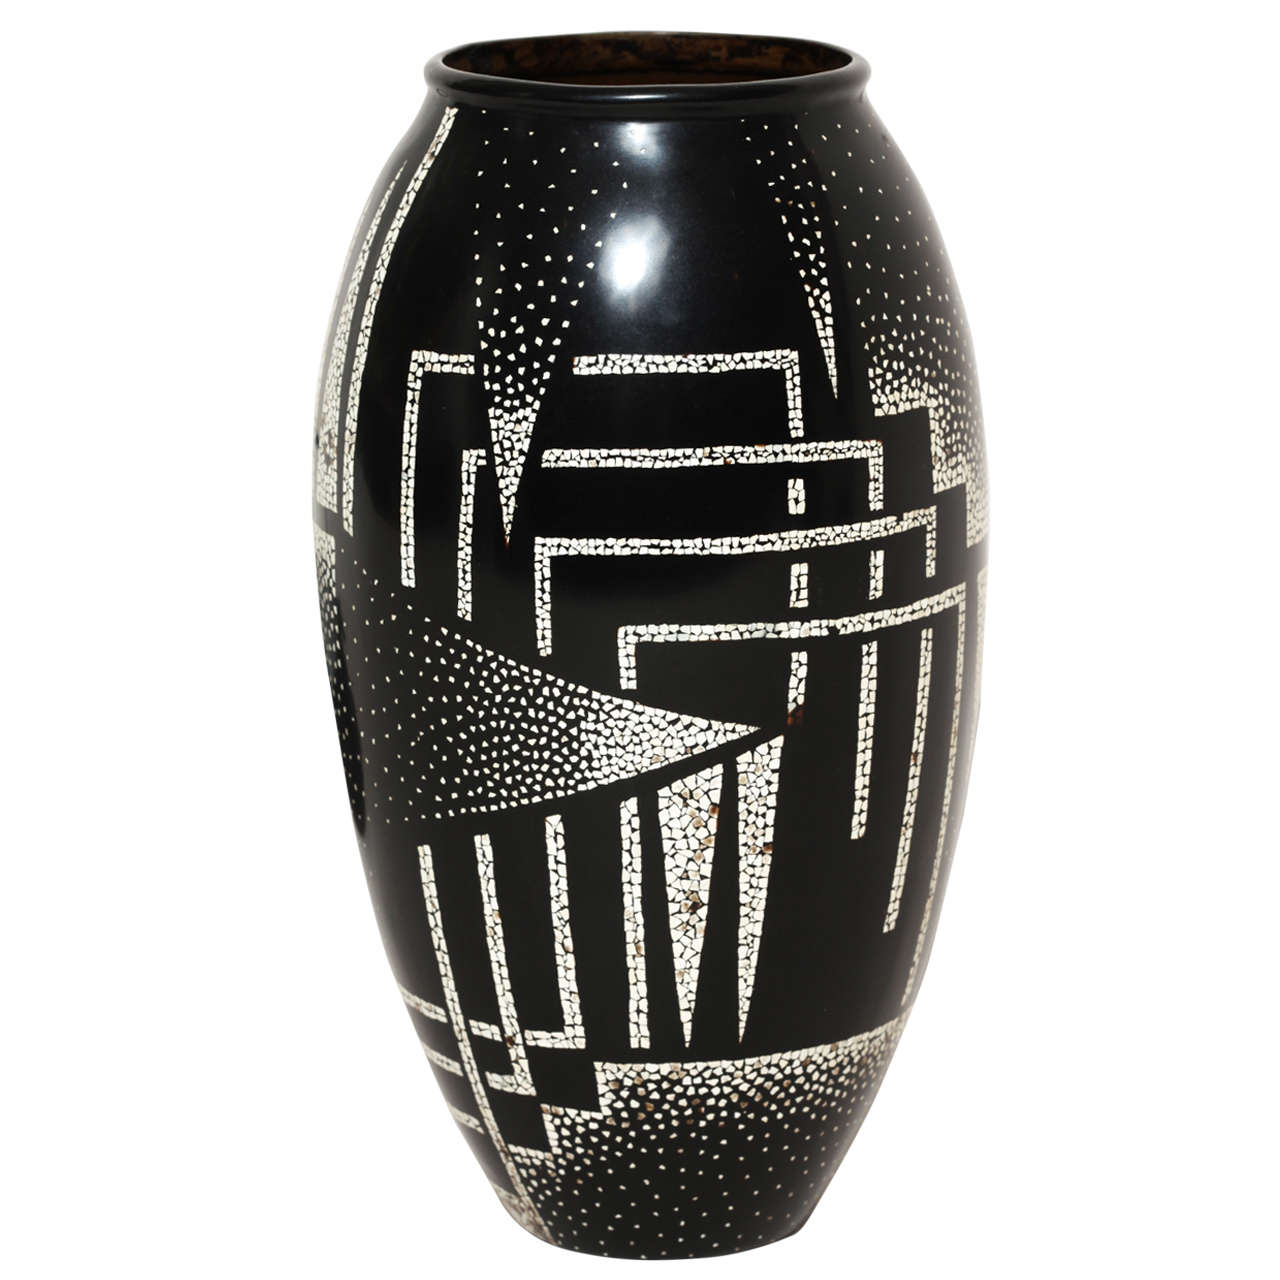 Jean dunand  art deco coquille d oeuf and black lacquered vase  1925